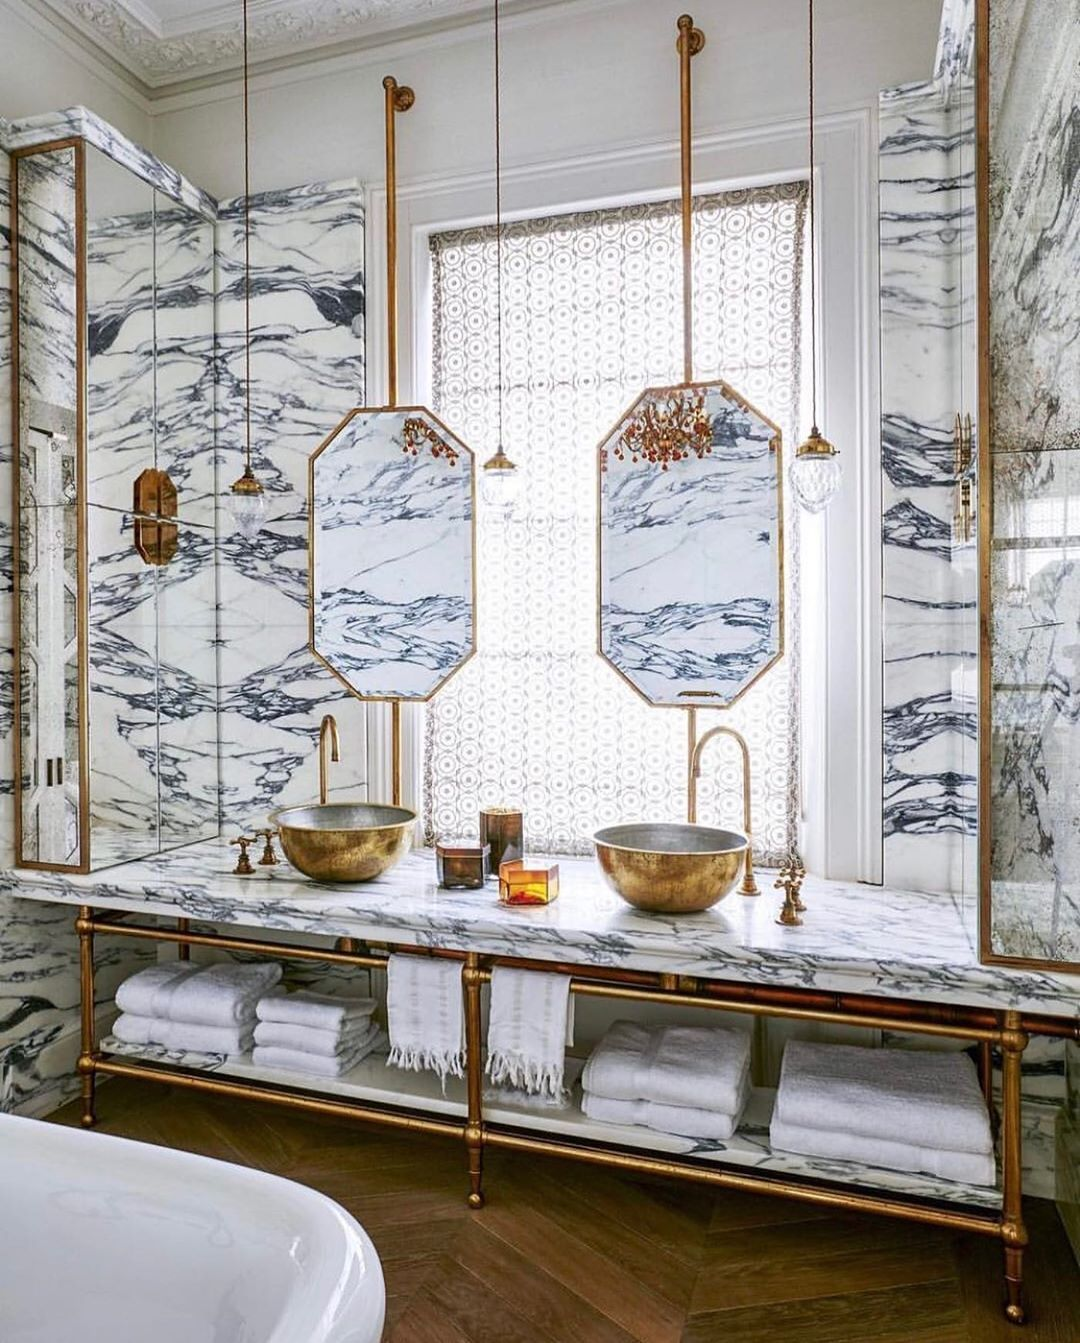 Elle Decor On Instagram All Marble Everything By Ricardolabougle Design By Madduxcreative From The Bathroom Inspiration Interior Beautiful Bathrooms Elle decor best bathrooms